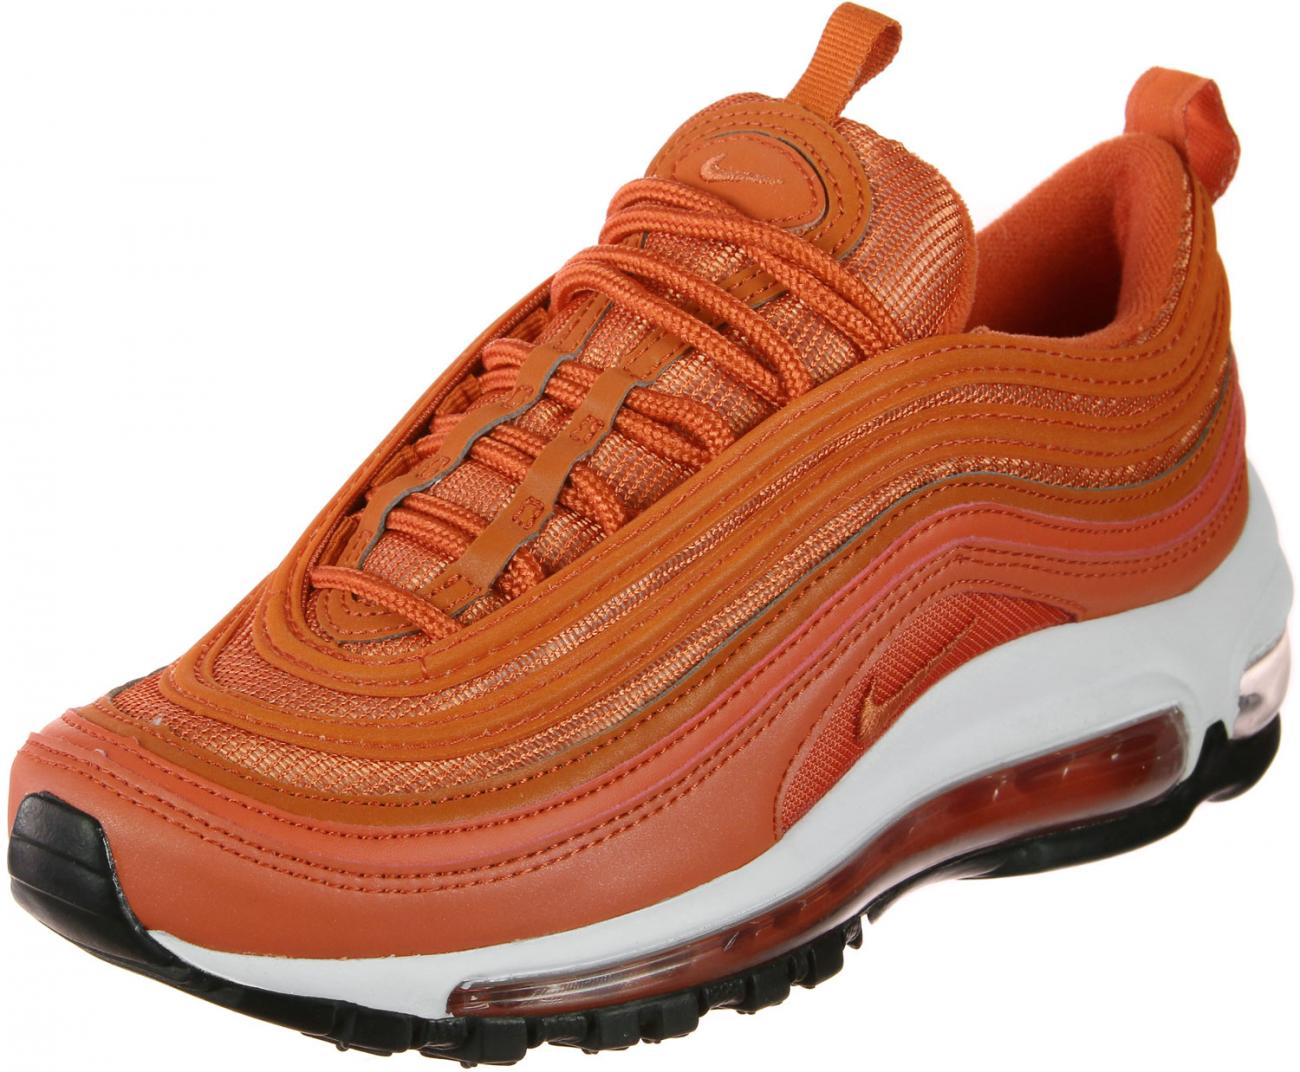 air max femme orange,Nike Air Max Dia orange femme